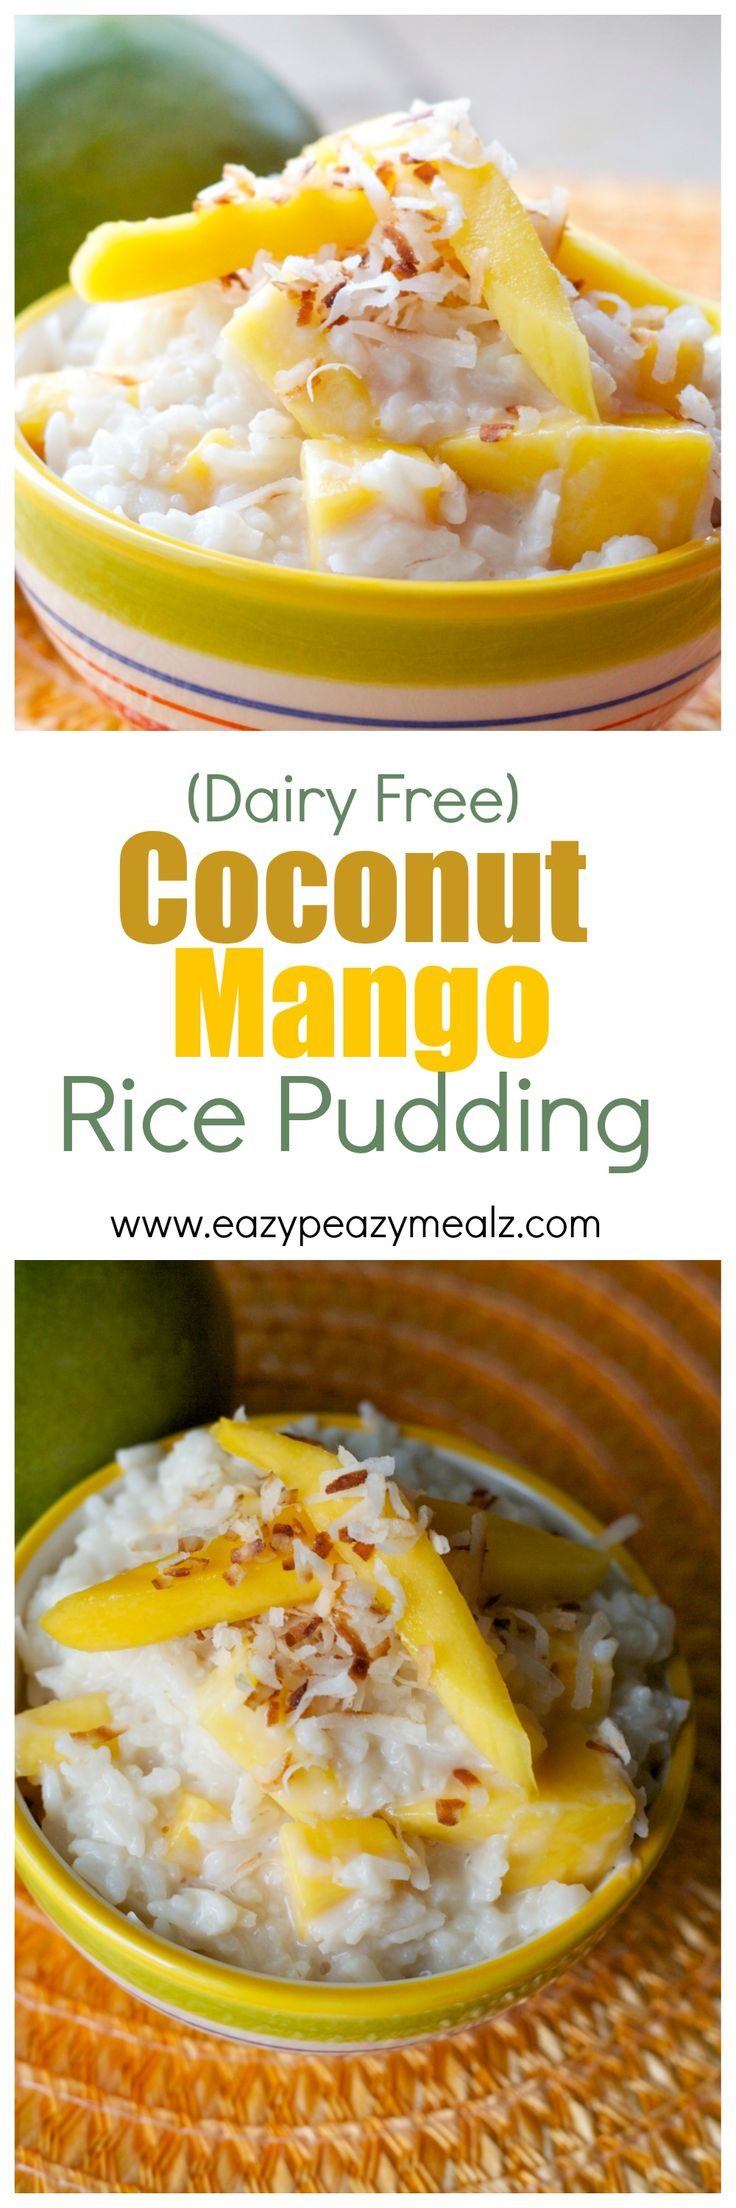 Dairy free and Delicious, this rice pudding offers a fun flavor profile and is easy to make! - Eazy Peazy Mealz